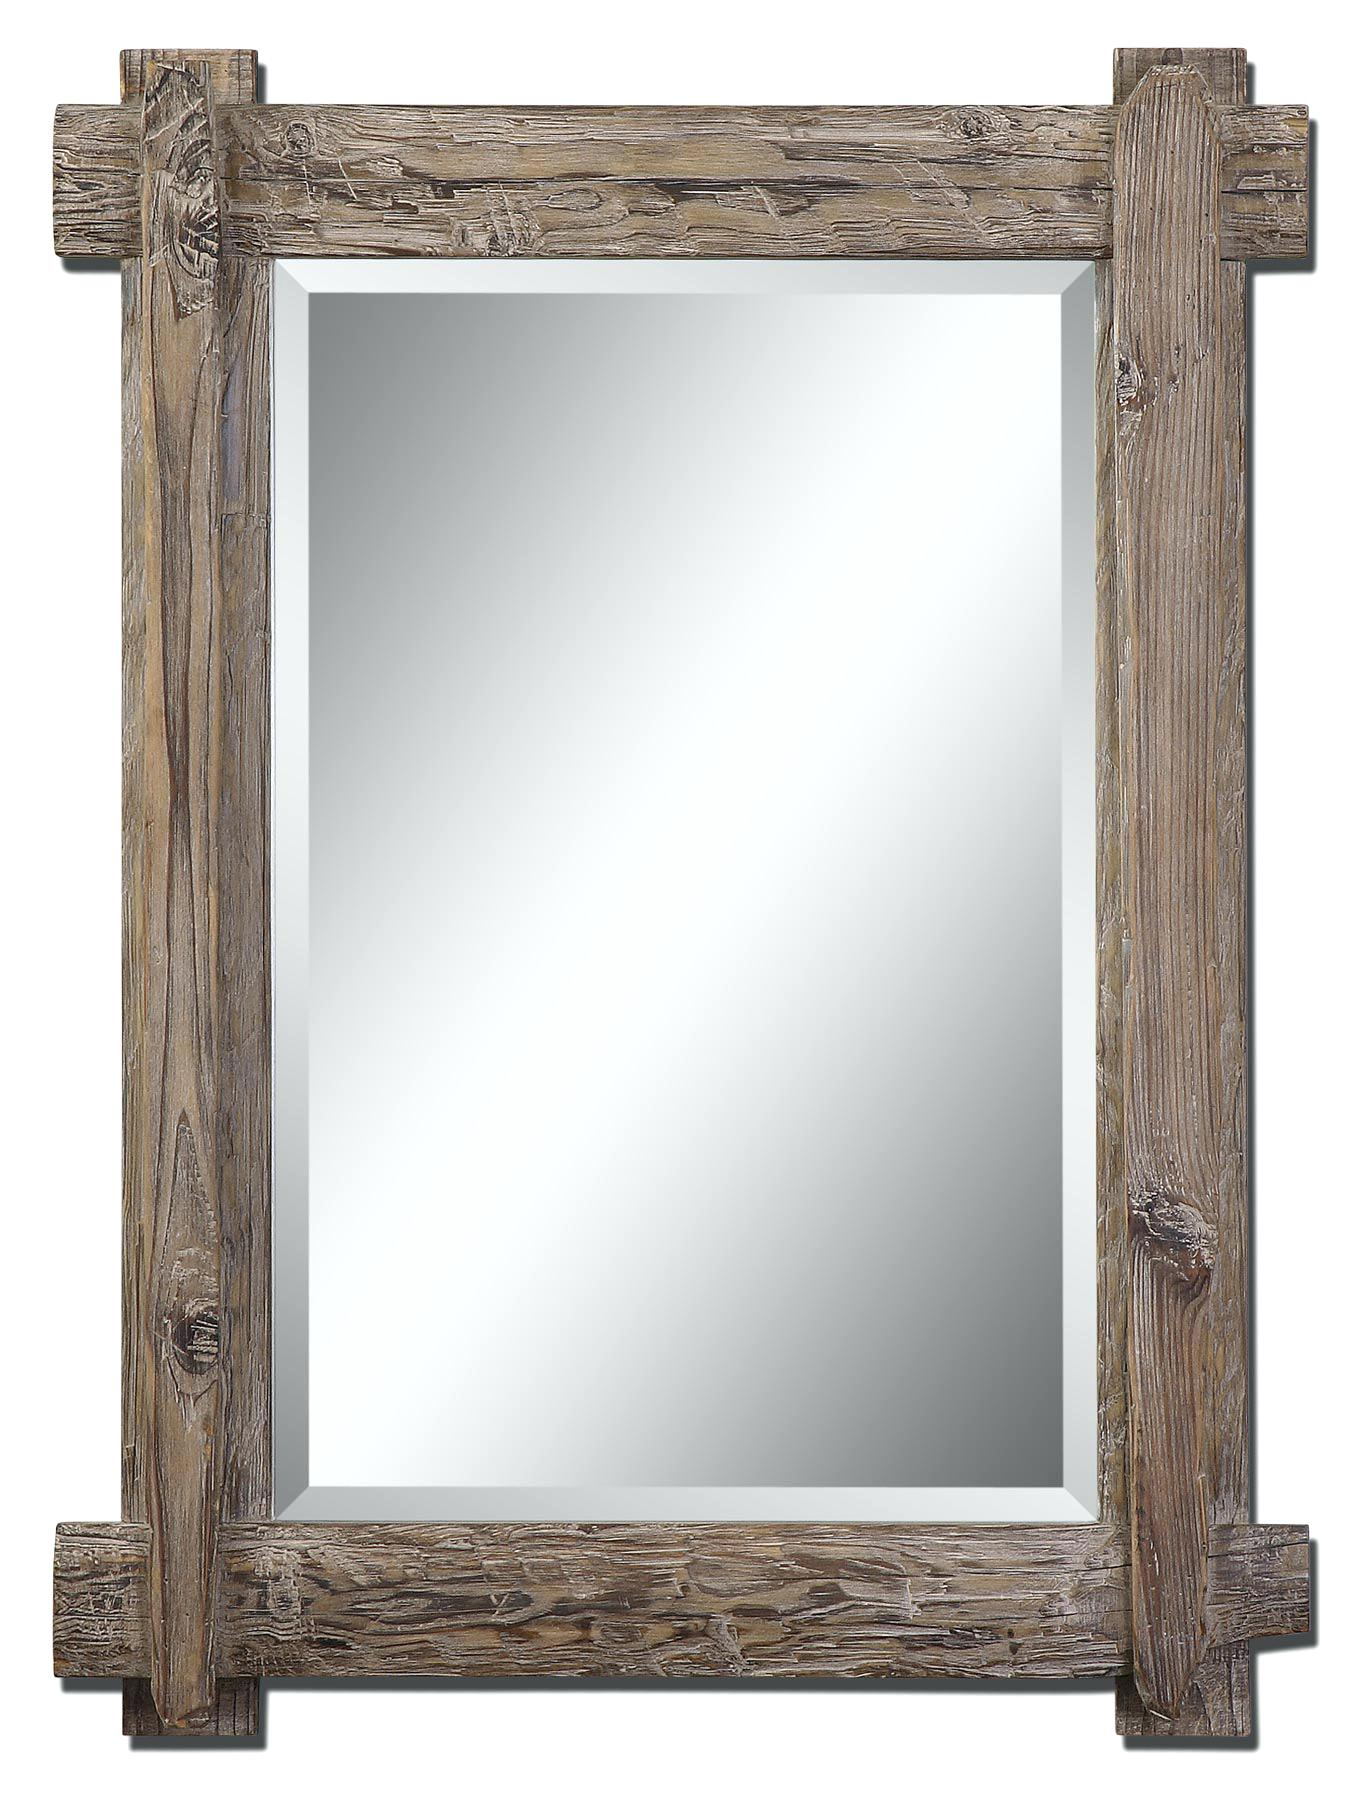 Ornate Wall Mirror | Reclaimed Wood Mirror | Beech Wood Framed Mirrors